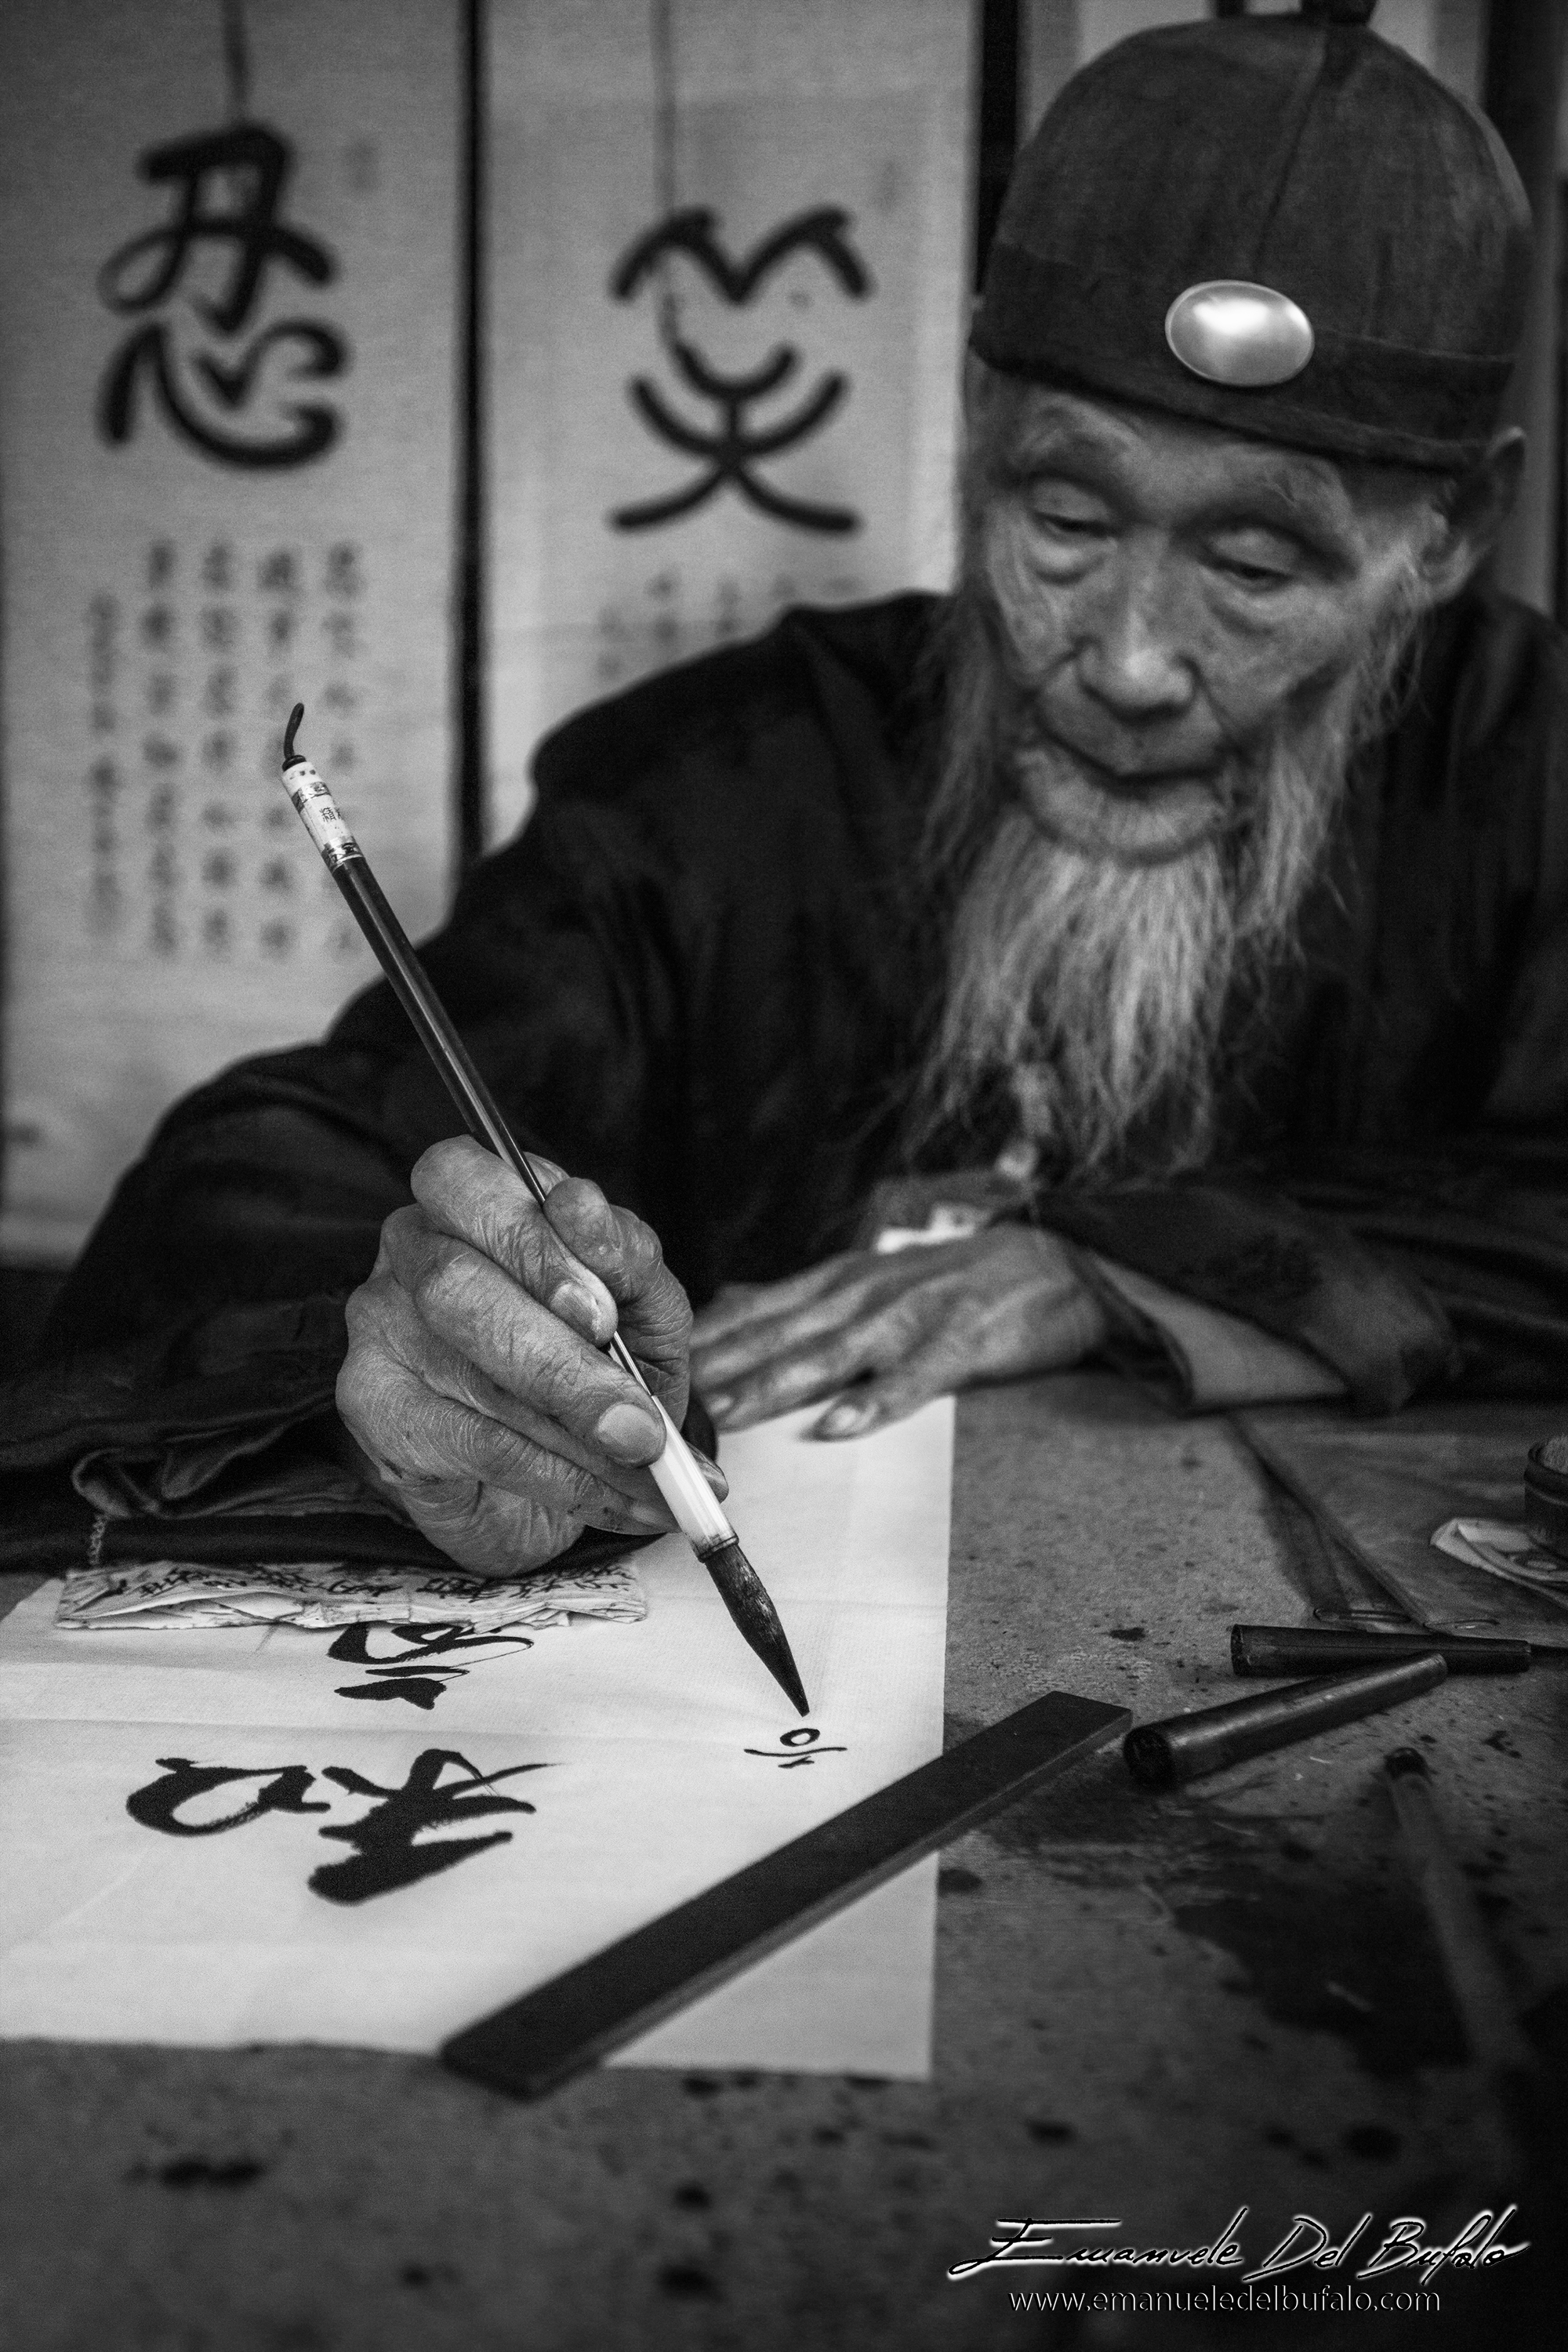 www.emanueledelbufalo.com #china #beijing #portrait #people #writer #pen #man #thelongtermtraveler